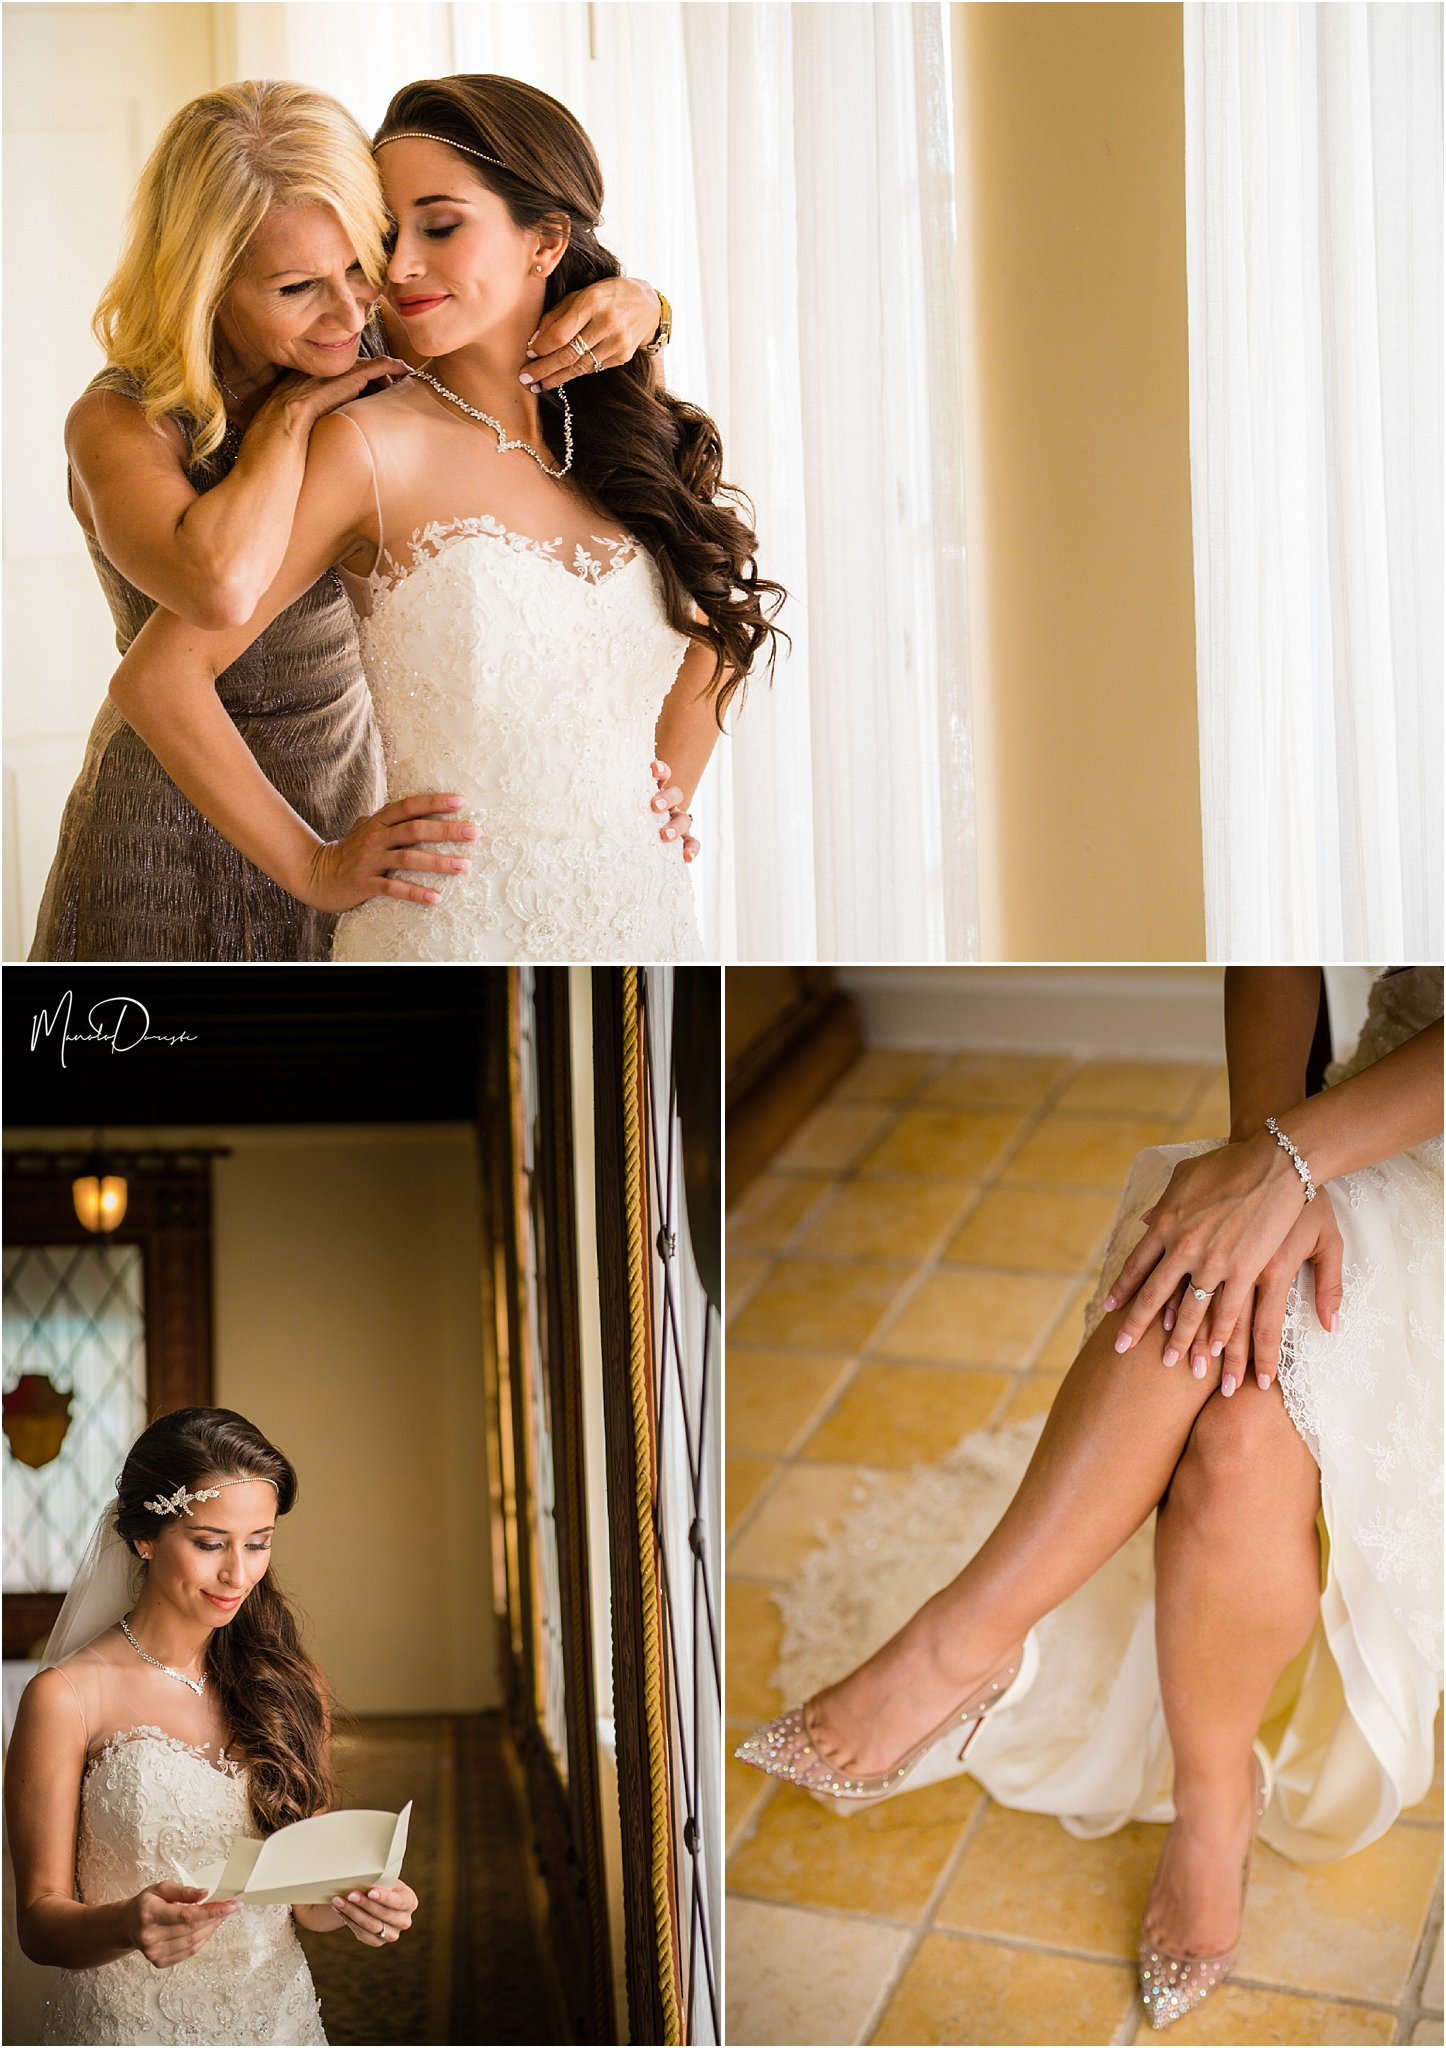 0154_ManoloDoreste_InFocusStudios_Wedding_Family_Photography_Miami_MiamiPhotographer.jpg